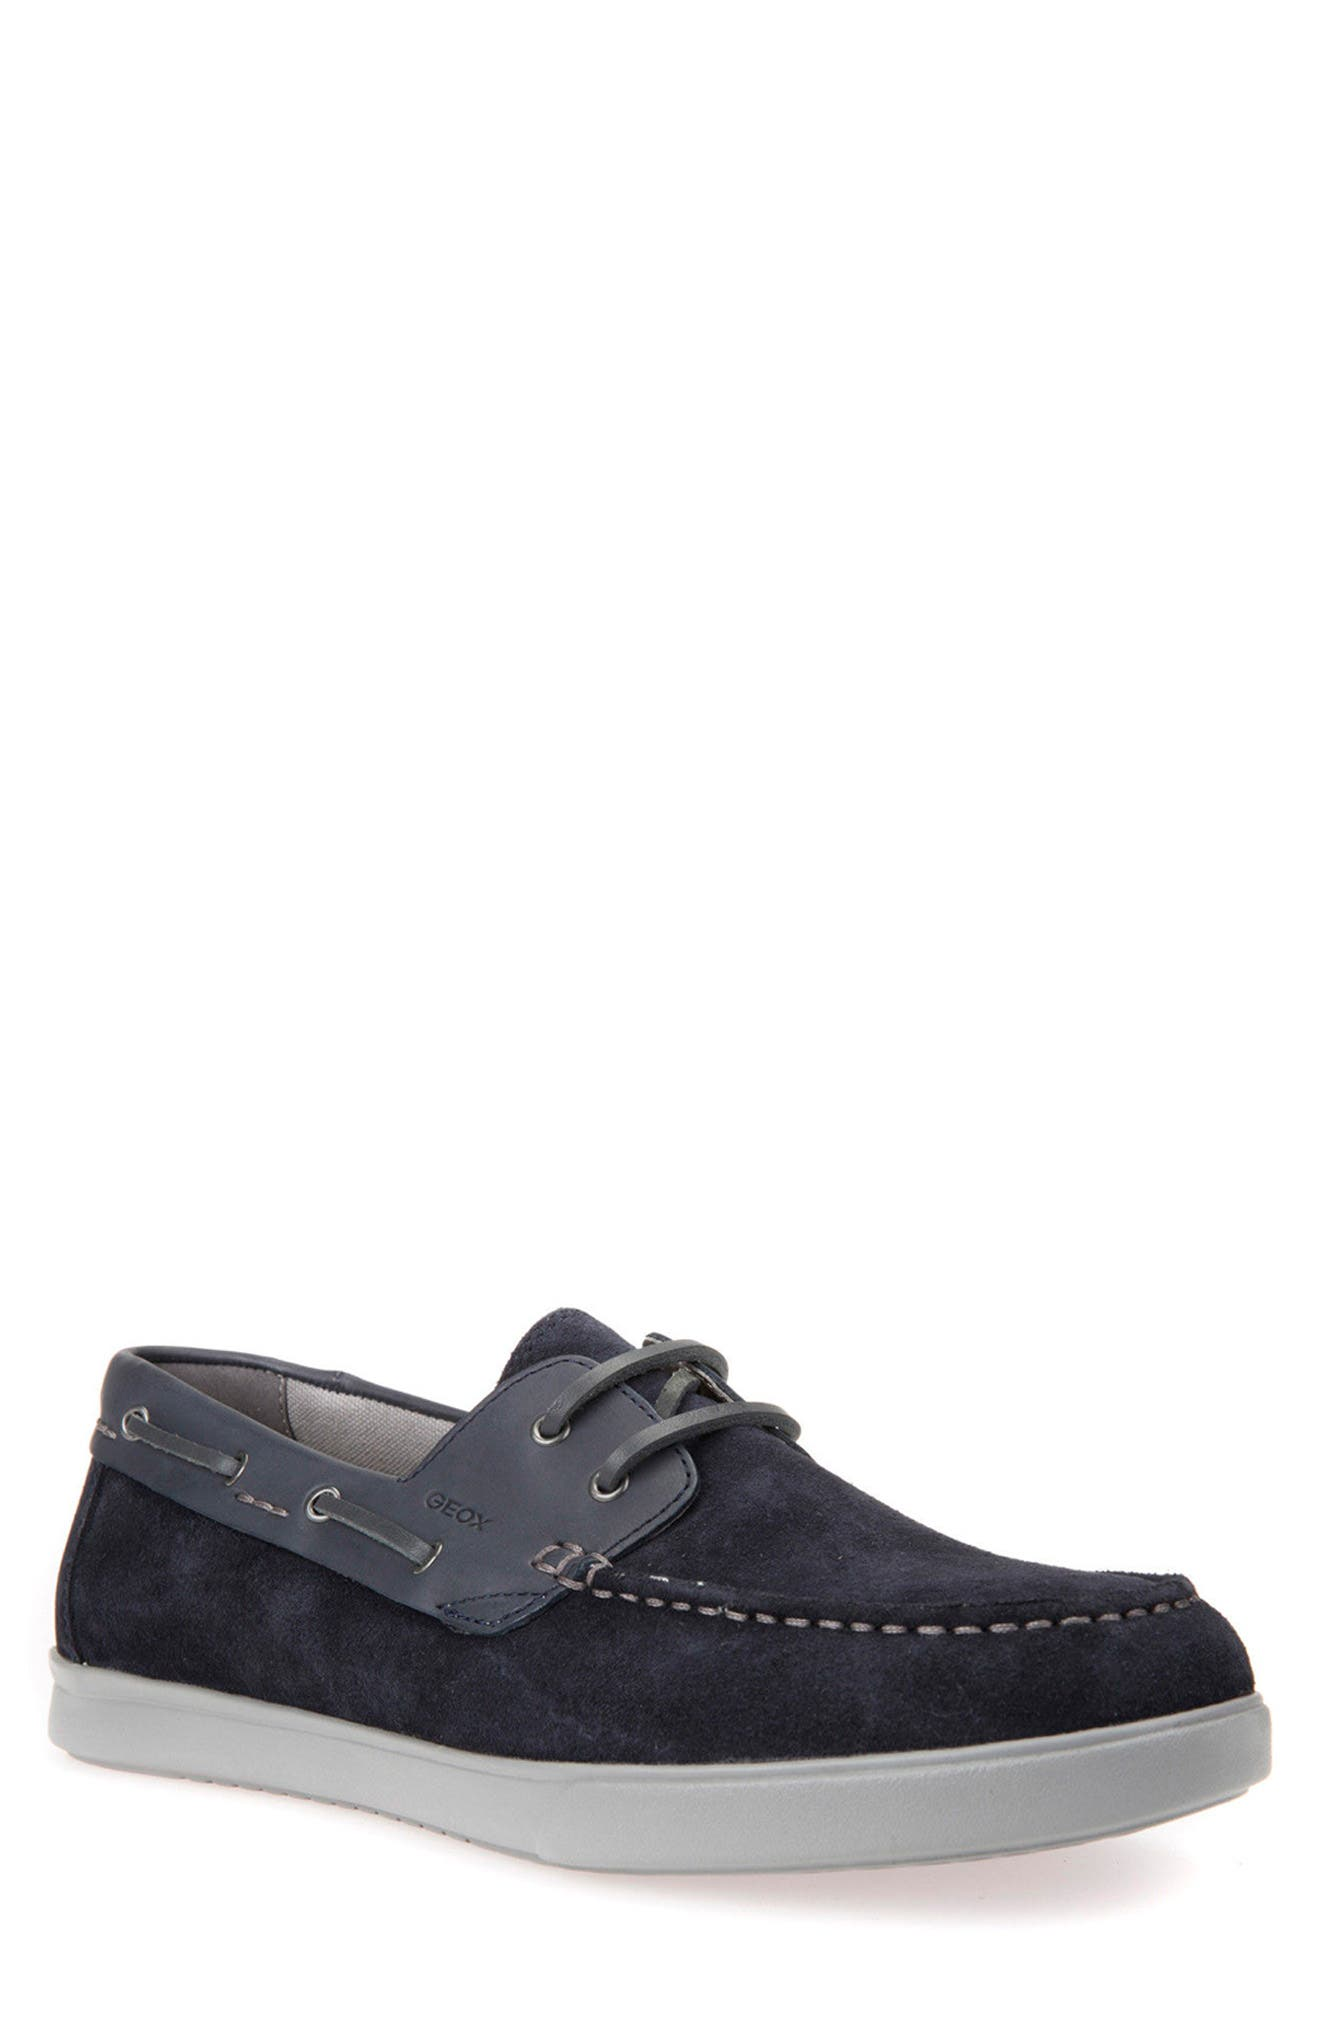 Walee 2 Boat Shoe,                             Main thumbnail 1, color,                             Navy Suede/ Leather